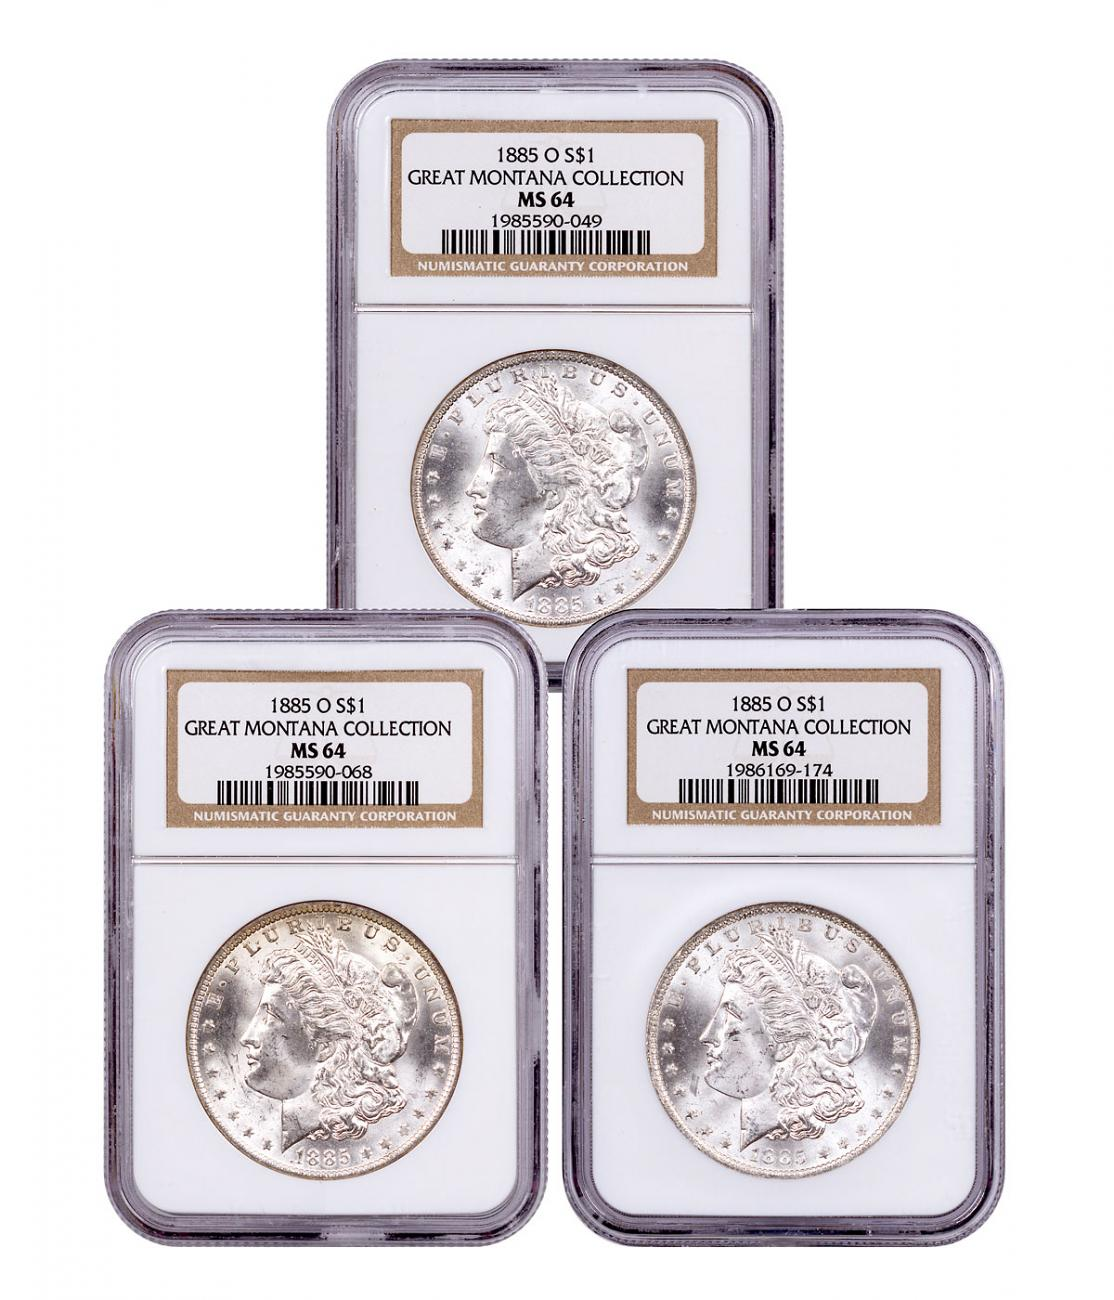 3-Coin Set - 1885-O Silver Morgan Dollar From the Great Montana Collection NGC MS64 Toned